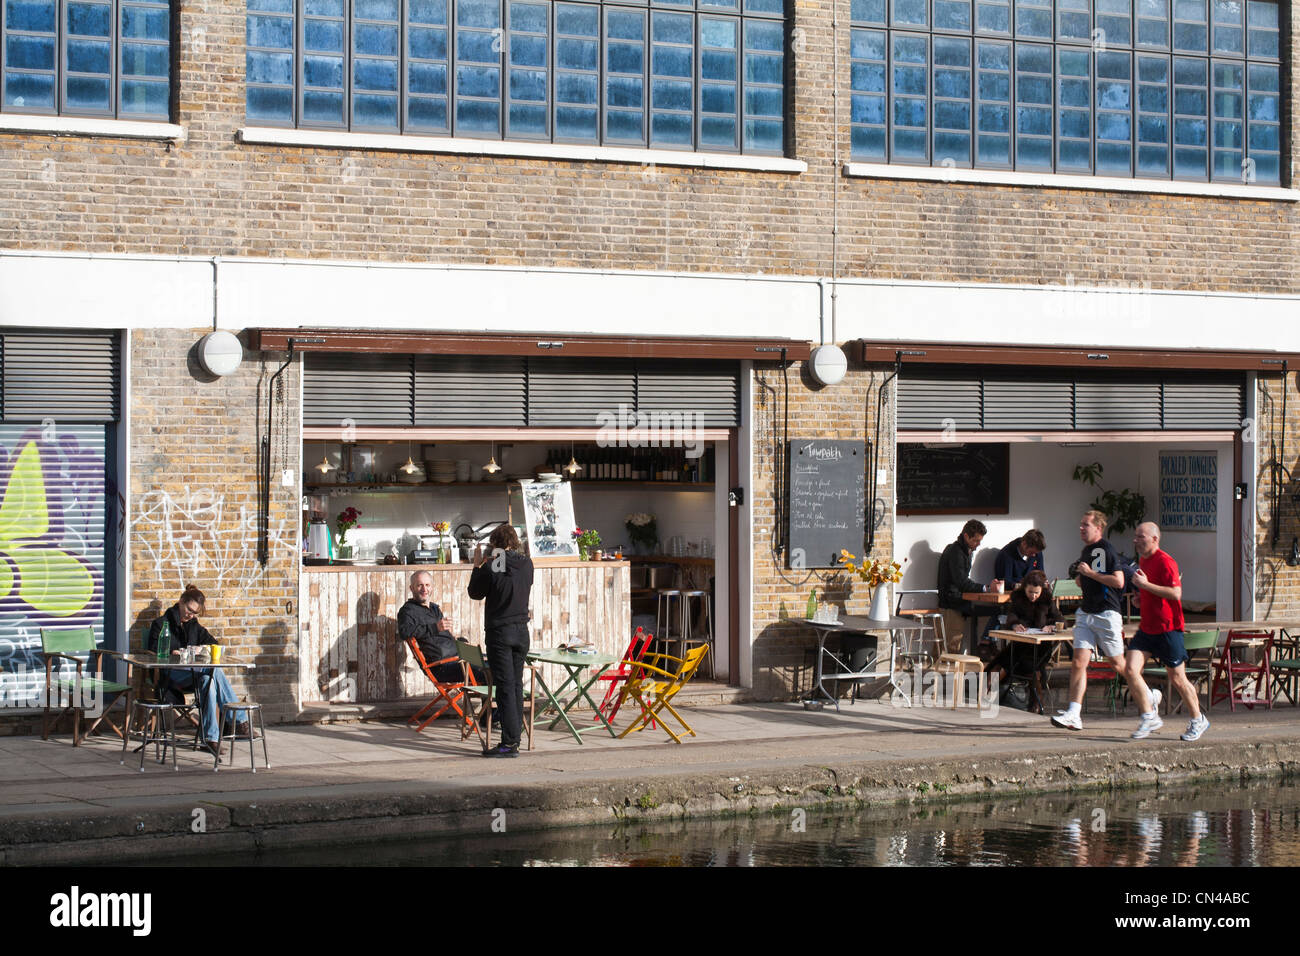 United Kingdom, London, Hackney, Regent's Canal, joggers in front of Towpath cafe open in 2010 by the canal - Stock Image